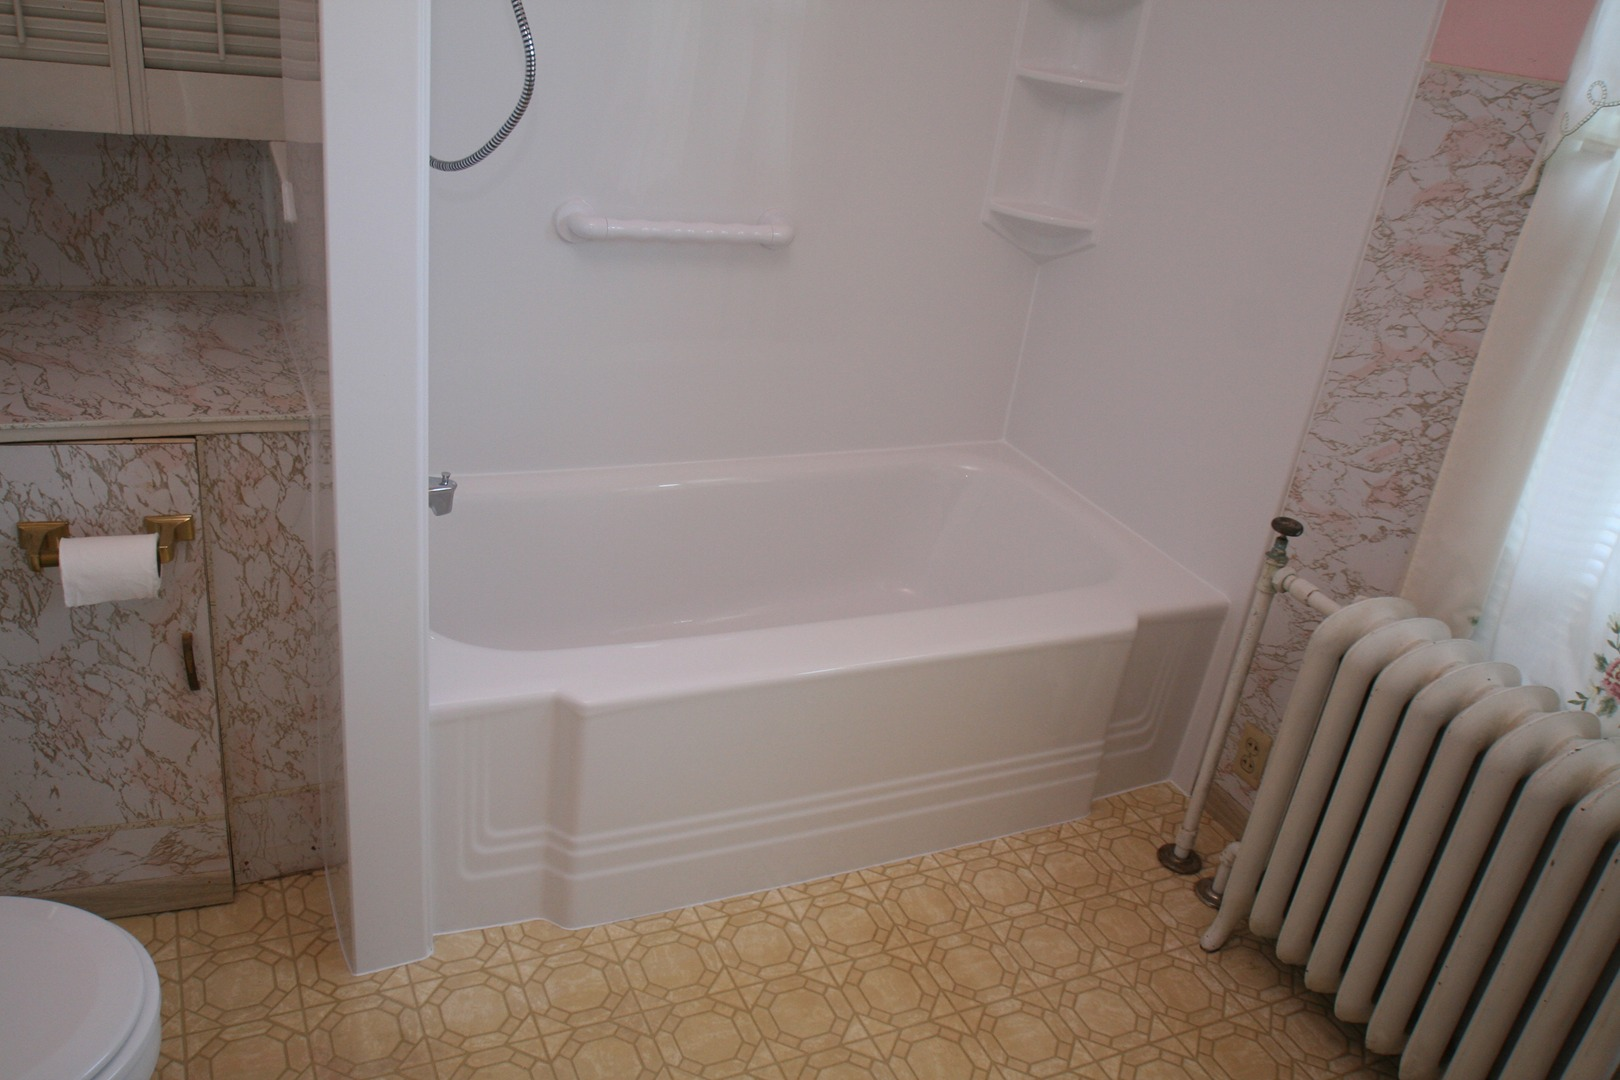 Cool bathtub insert ideas bathtub for bathroom ideas for Tub liner installation